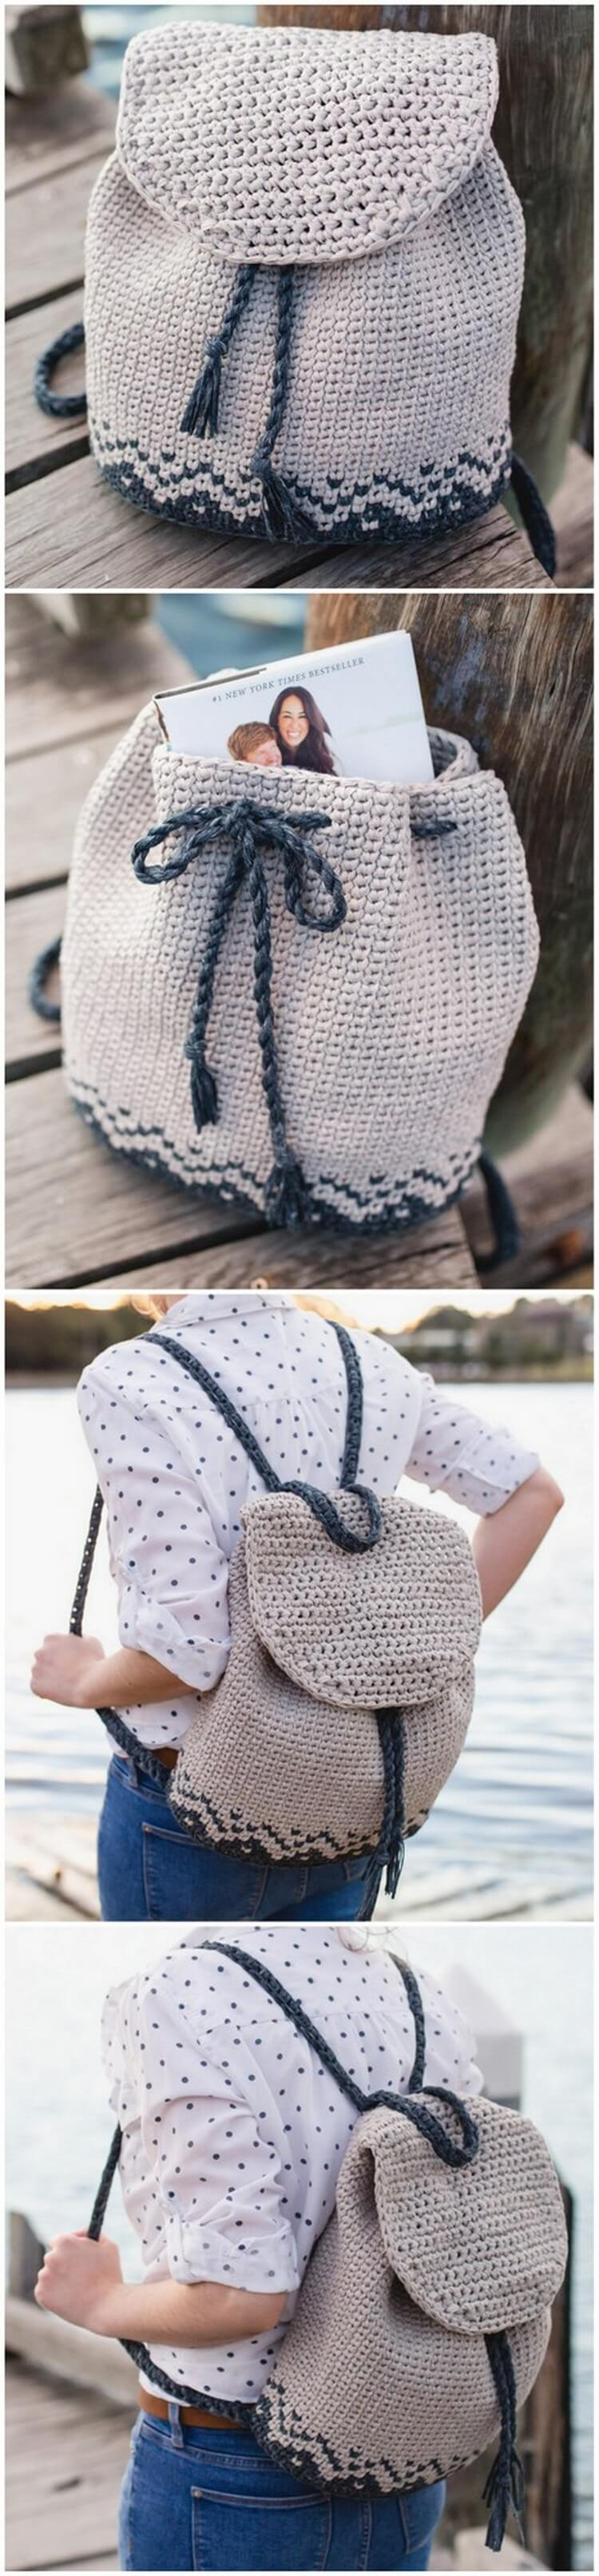 Crochet Backpack Pattern (17)